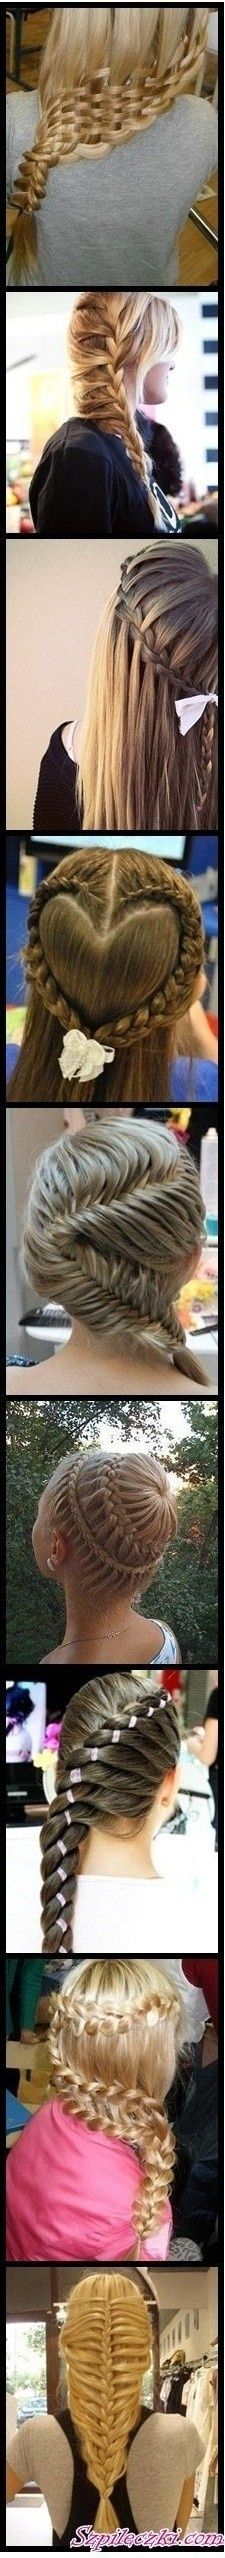 Cool braids.....Want to try these :)